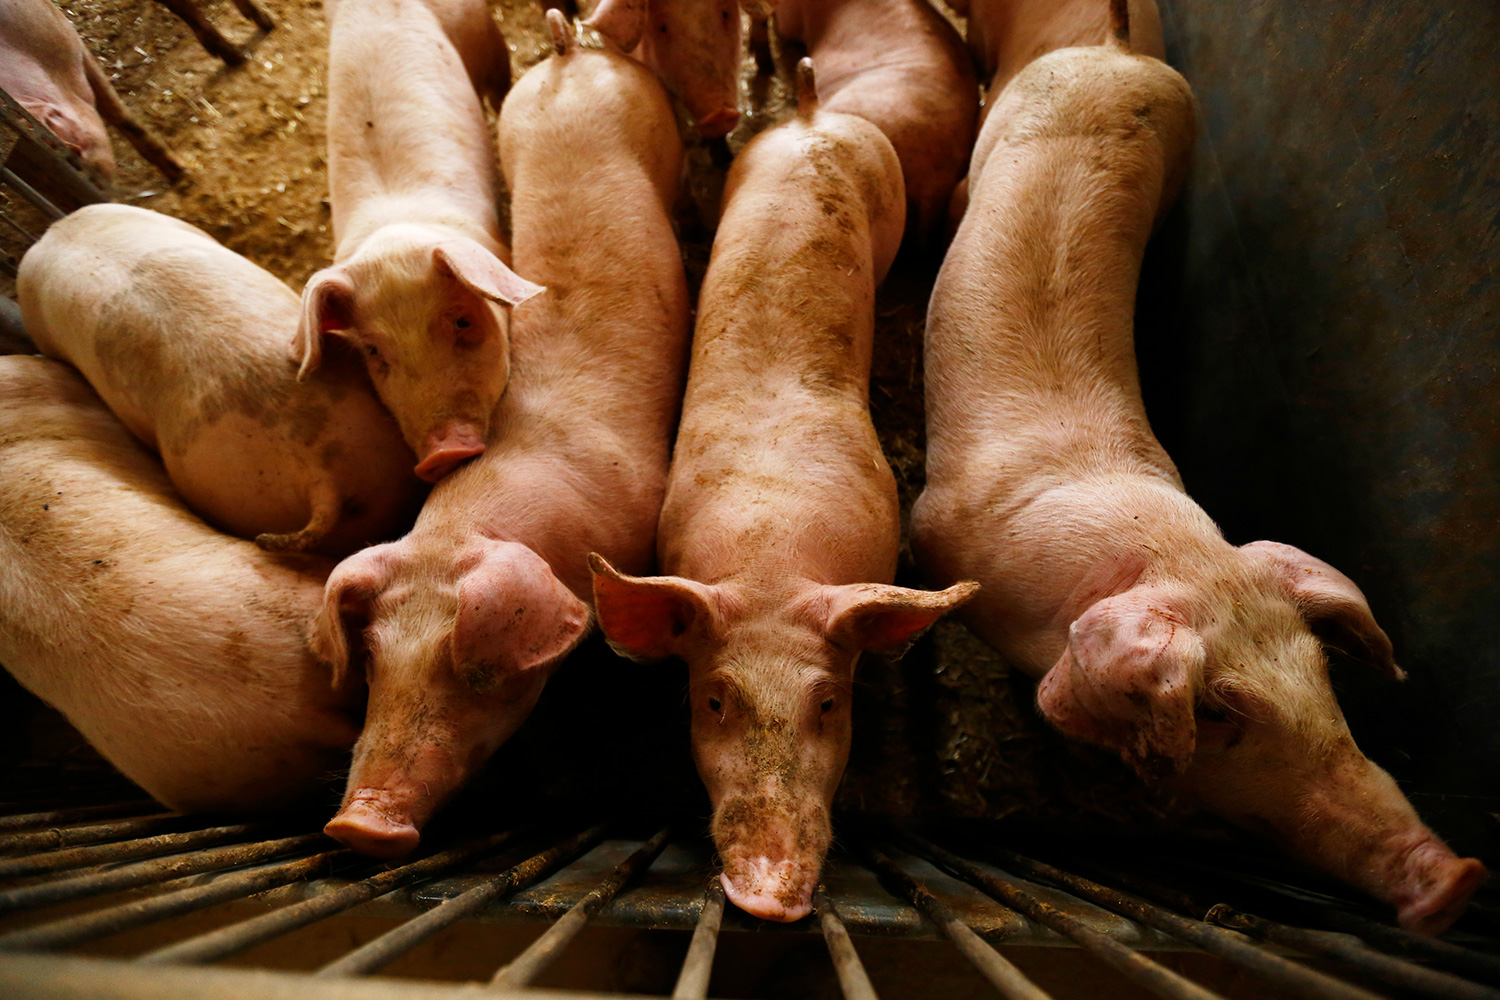 The photo shows a number of pigs in a pen from above.